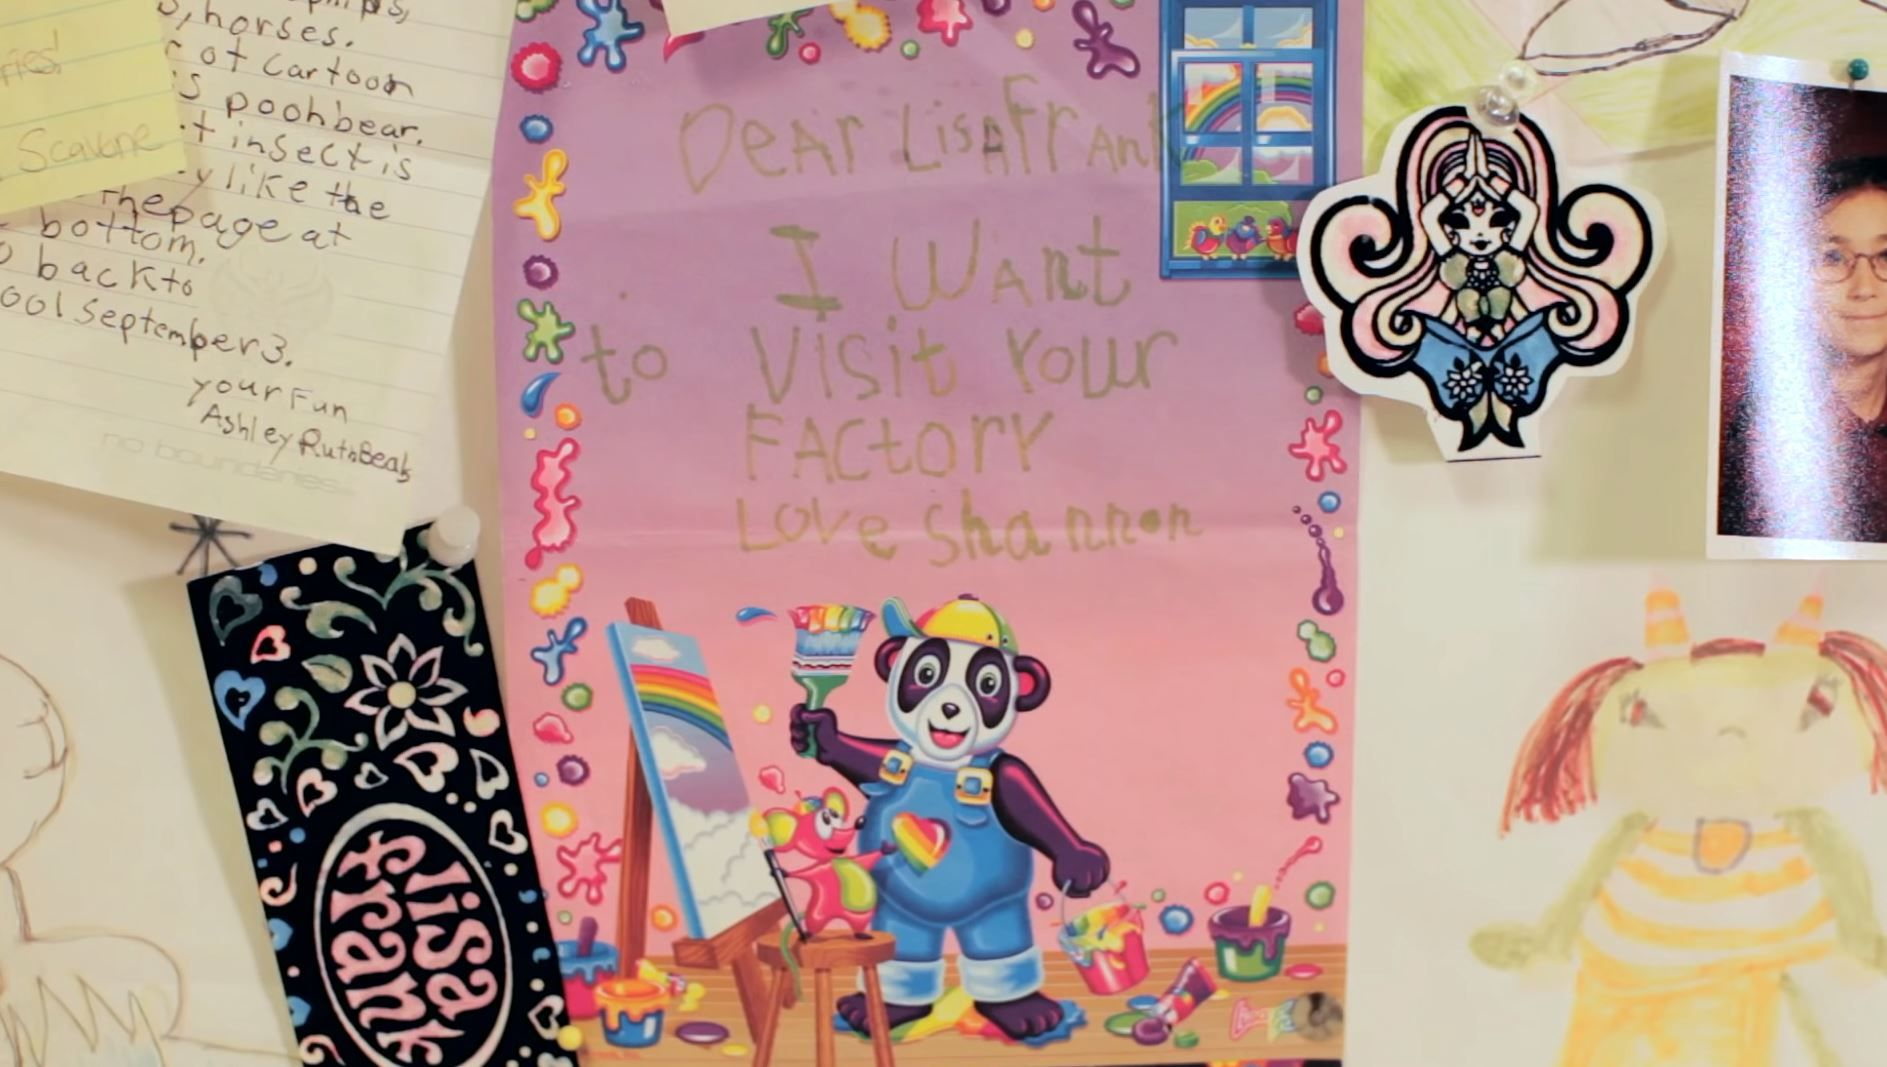 Lisa Frank factory tour